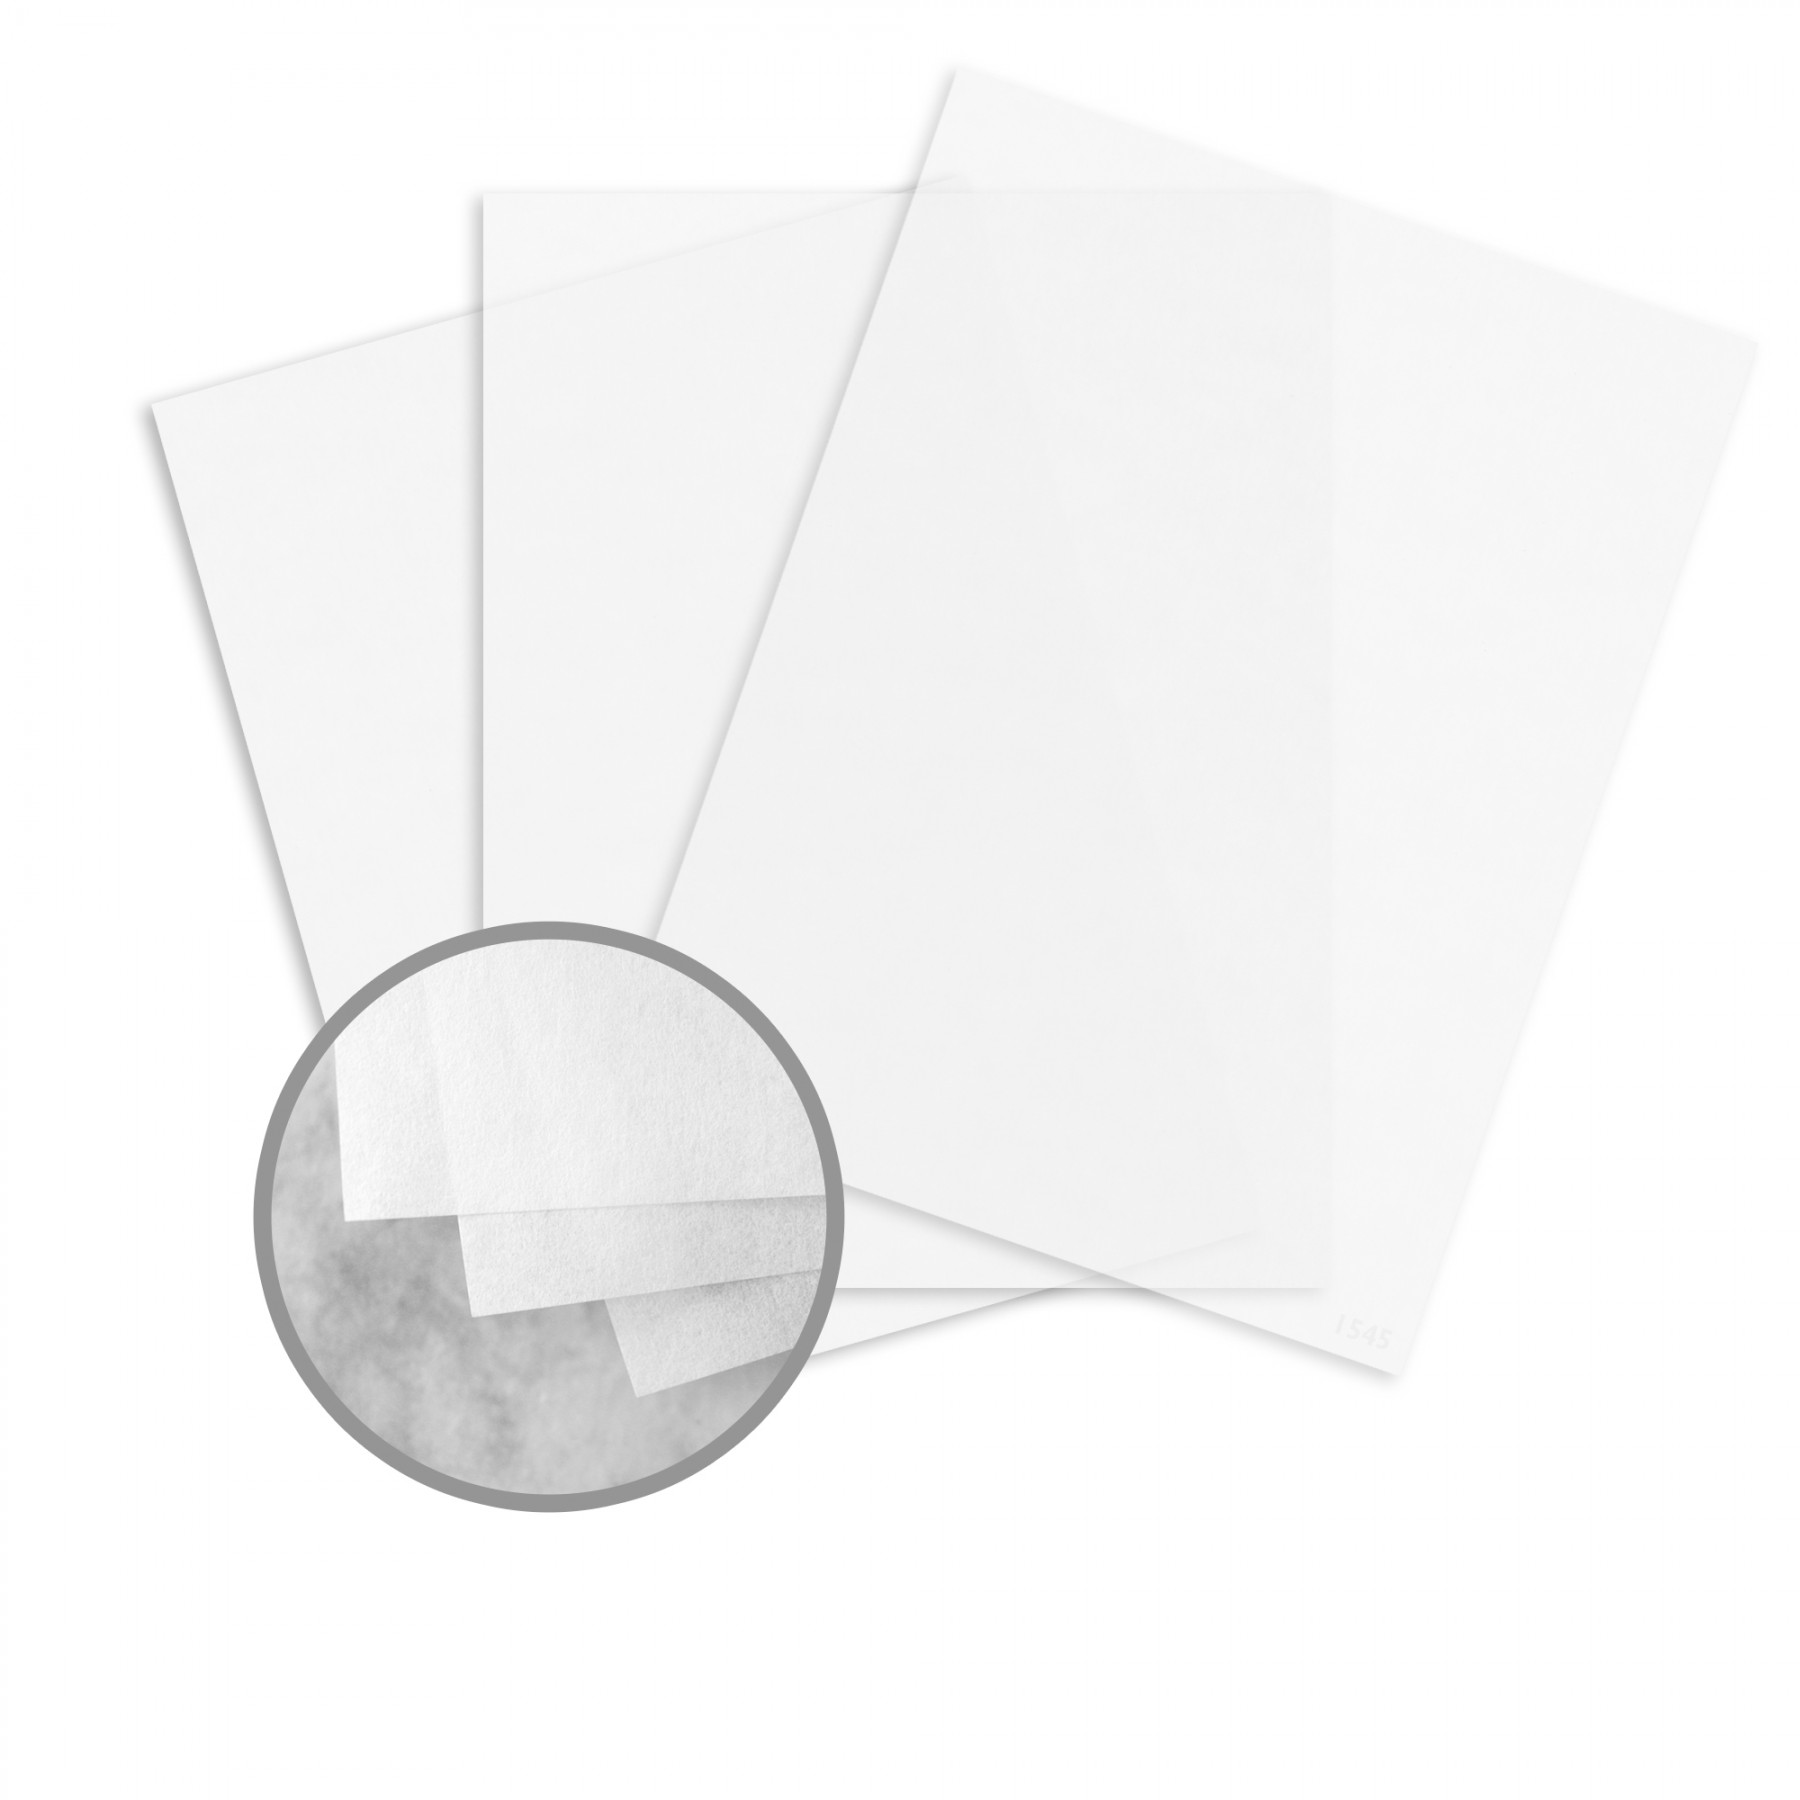 onion paper Our rolled tracing paper is for detail or rough sketch work products like tracing paper, dumwad, rolled tracing paper, tracing paper pads, onion skin paper.